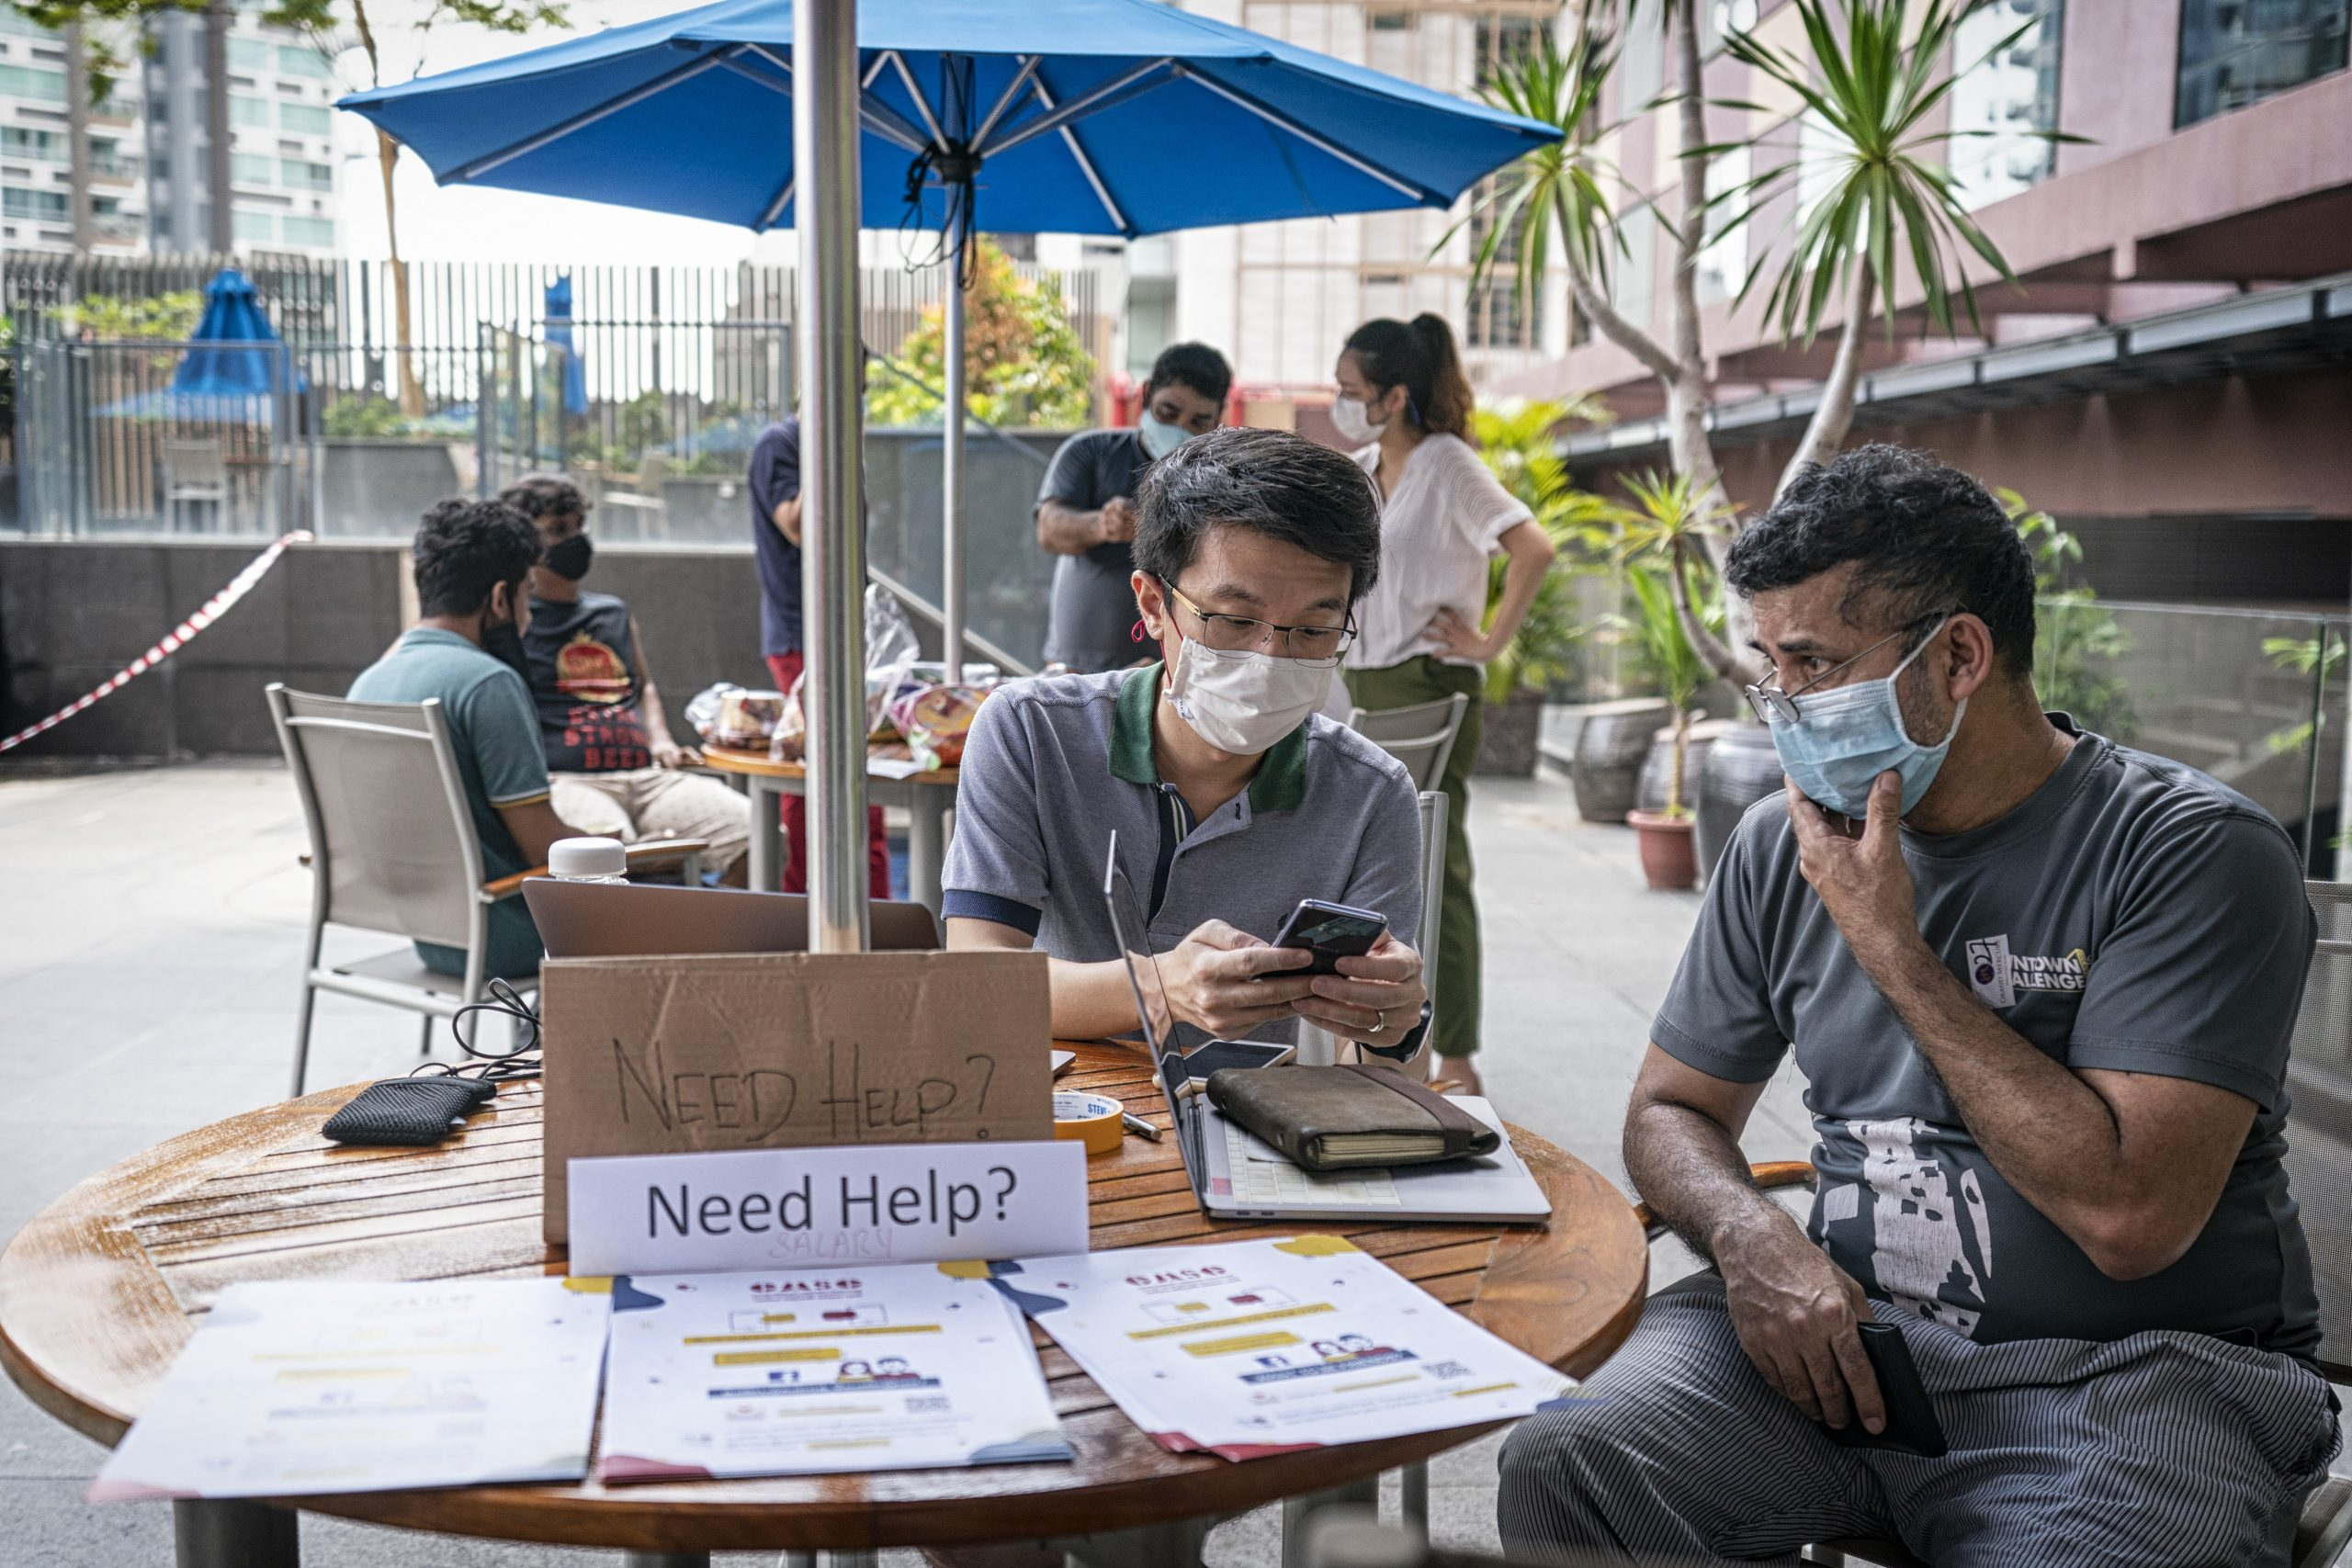 Help desks are set up to address questions and concerns of migrant workers — from enquiries about their salary and banking needs to making sure they can call their families when home sick. Digital ambassadors are present to help workers download, navigate and troubleshoot apps they need to return back to work.